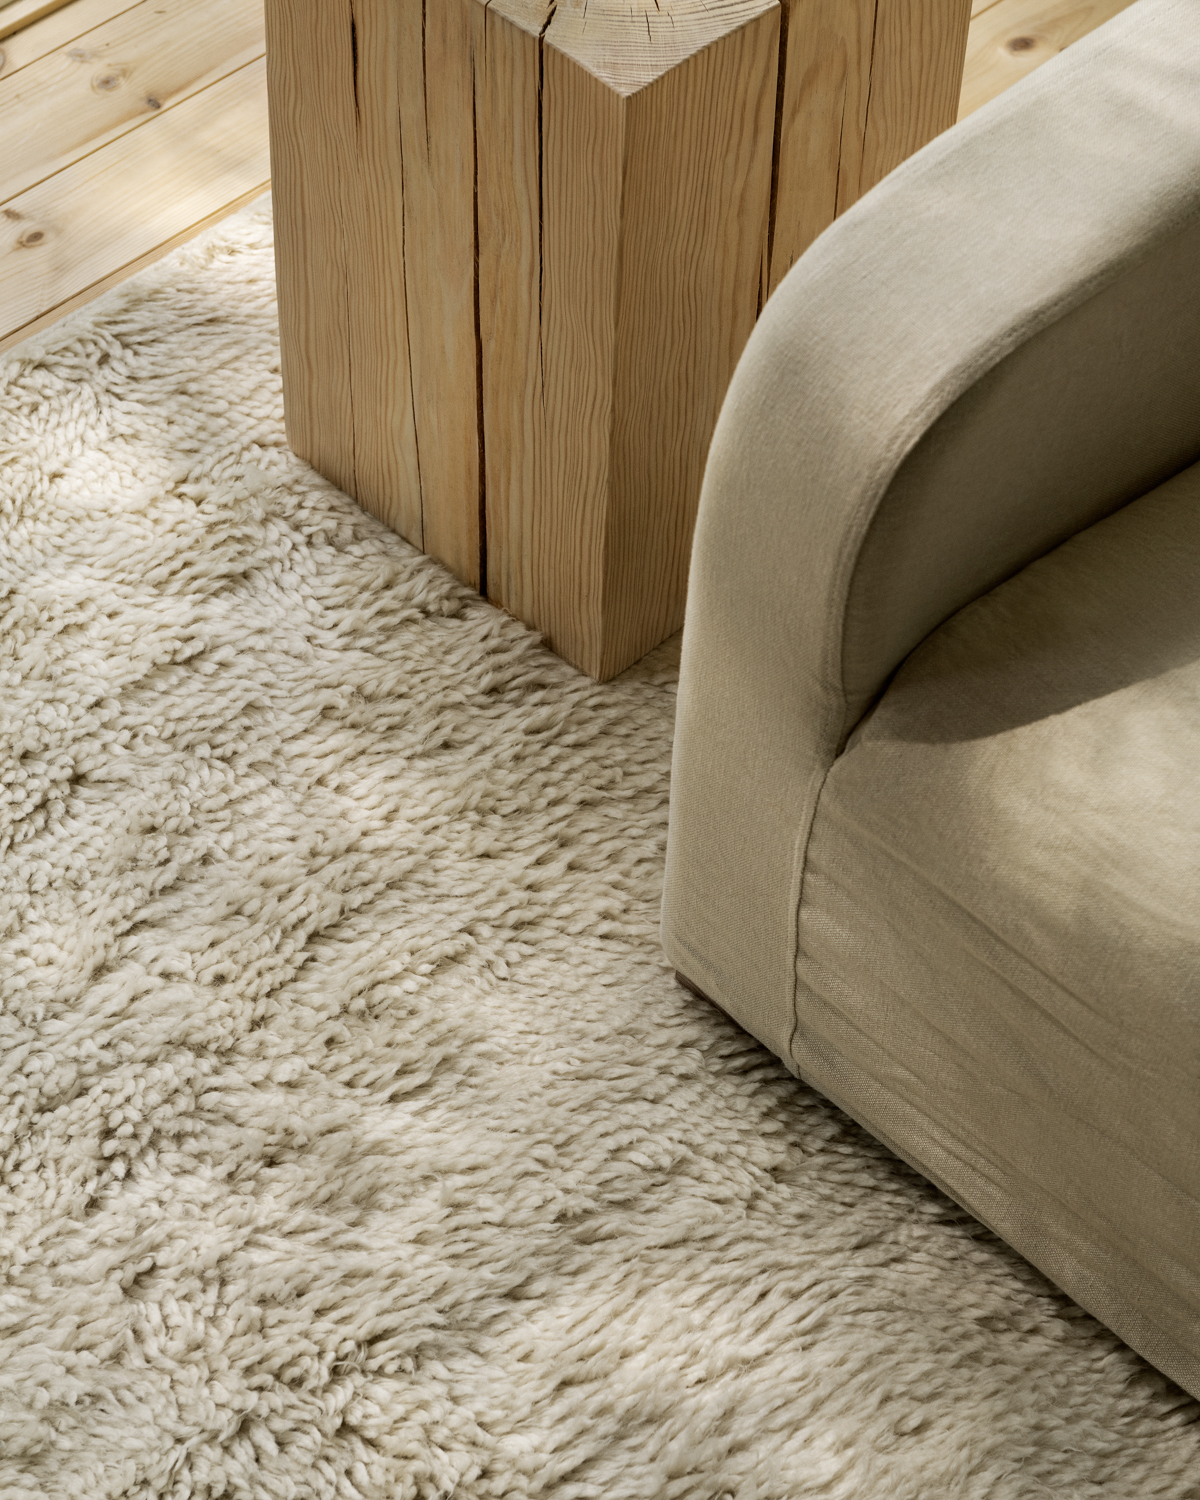 Details of Fields Sand shaggy wool rug in a house in the woods